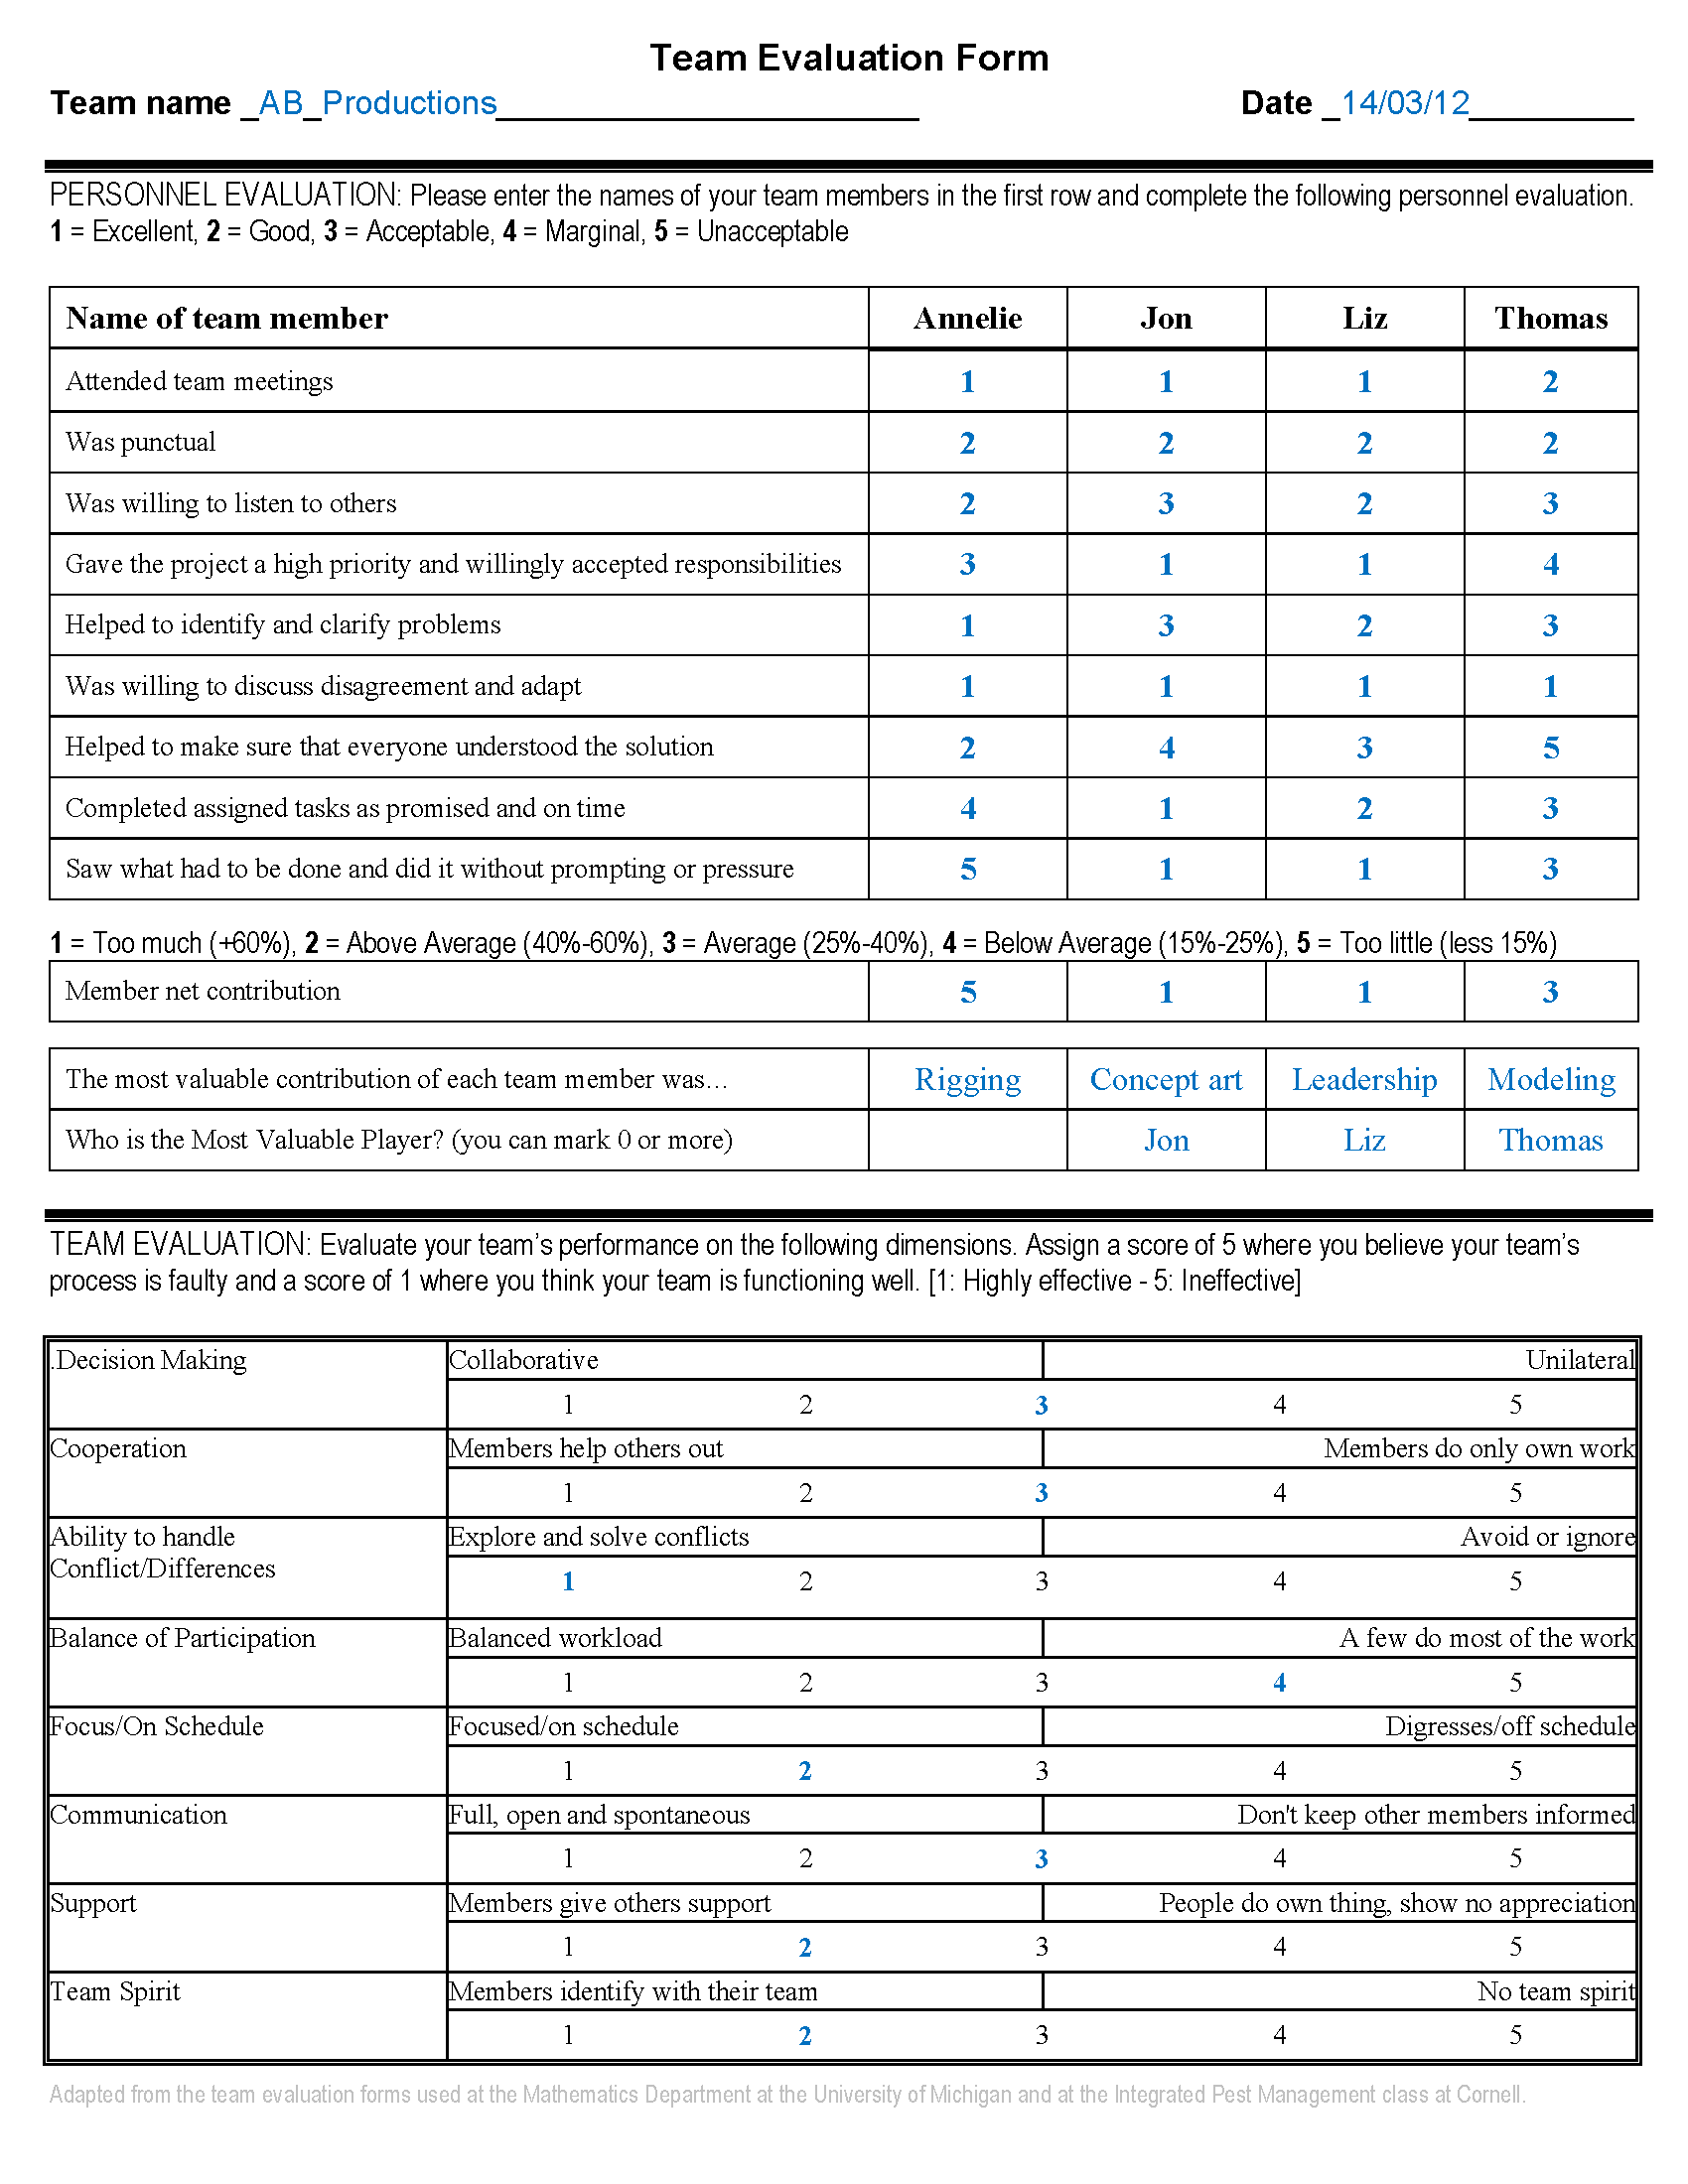 Evaluation form in word